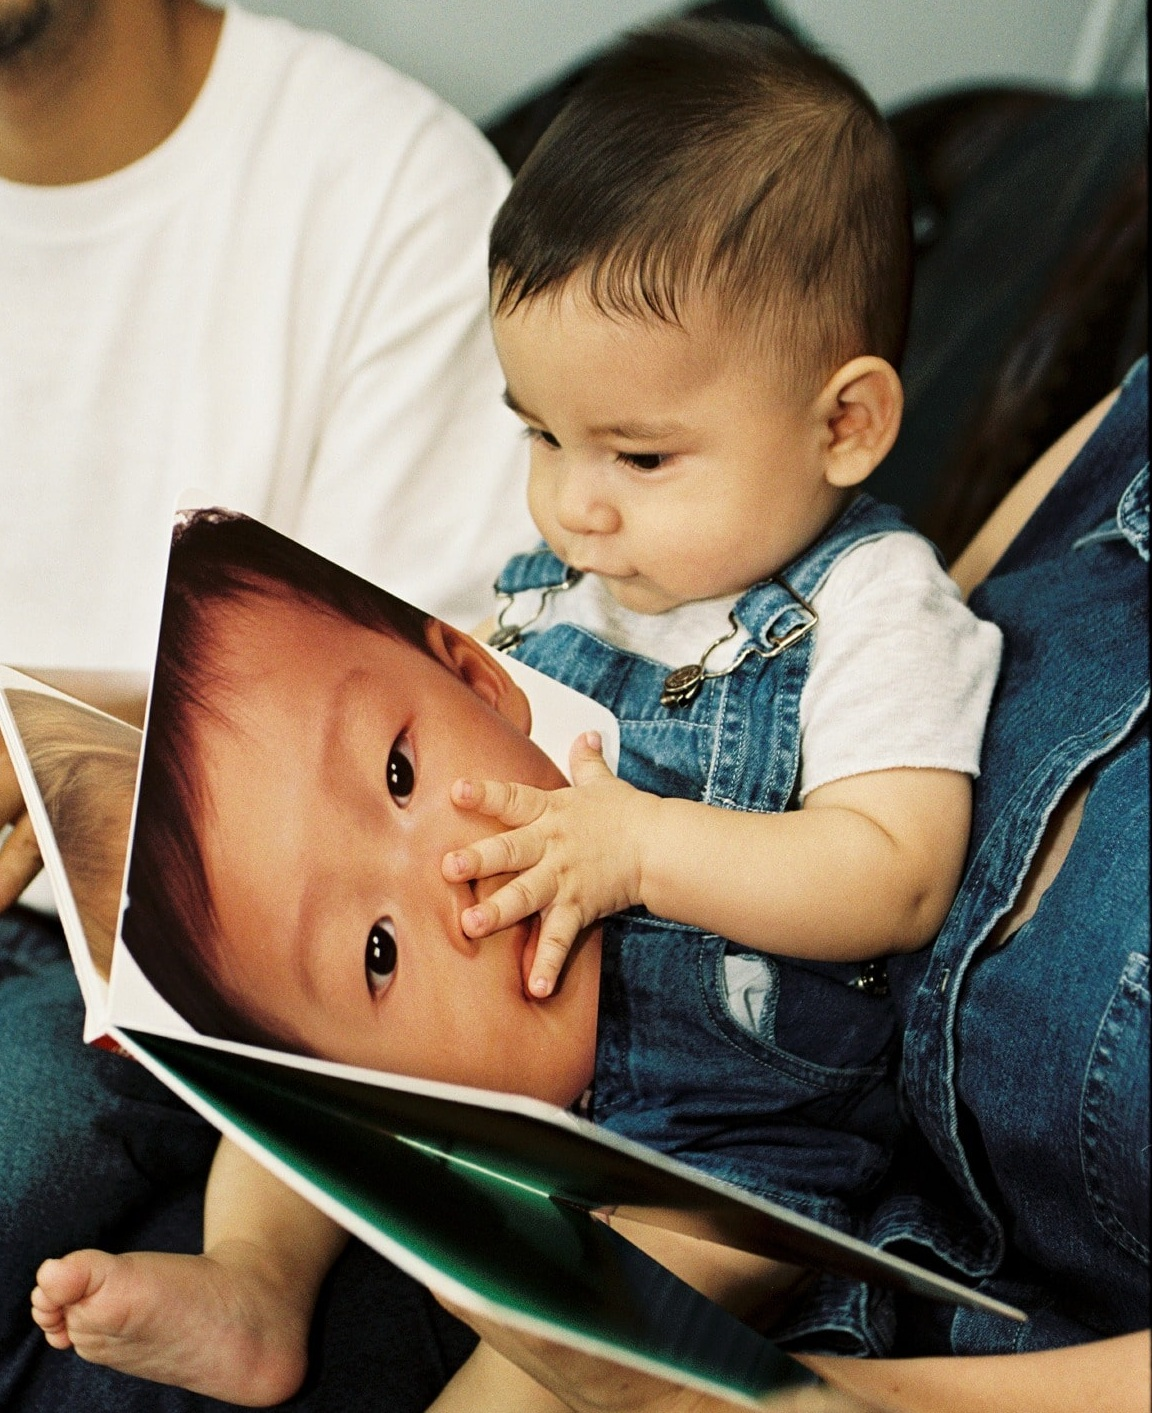 NFP - Baby looking @ the baby in the book.jpg